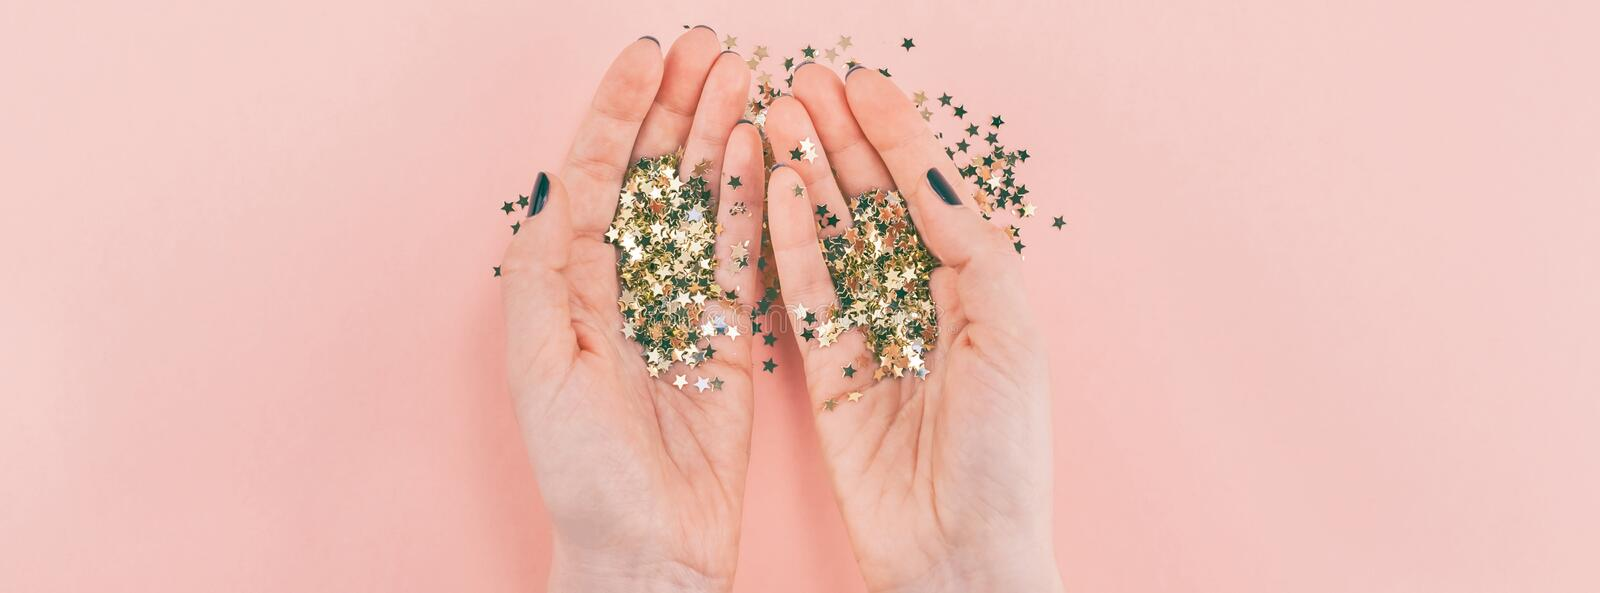 Woman hands covered golden stars confetti on pink royalty free stock image